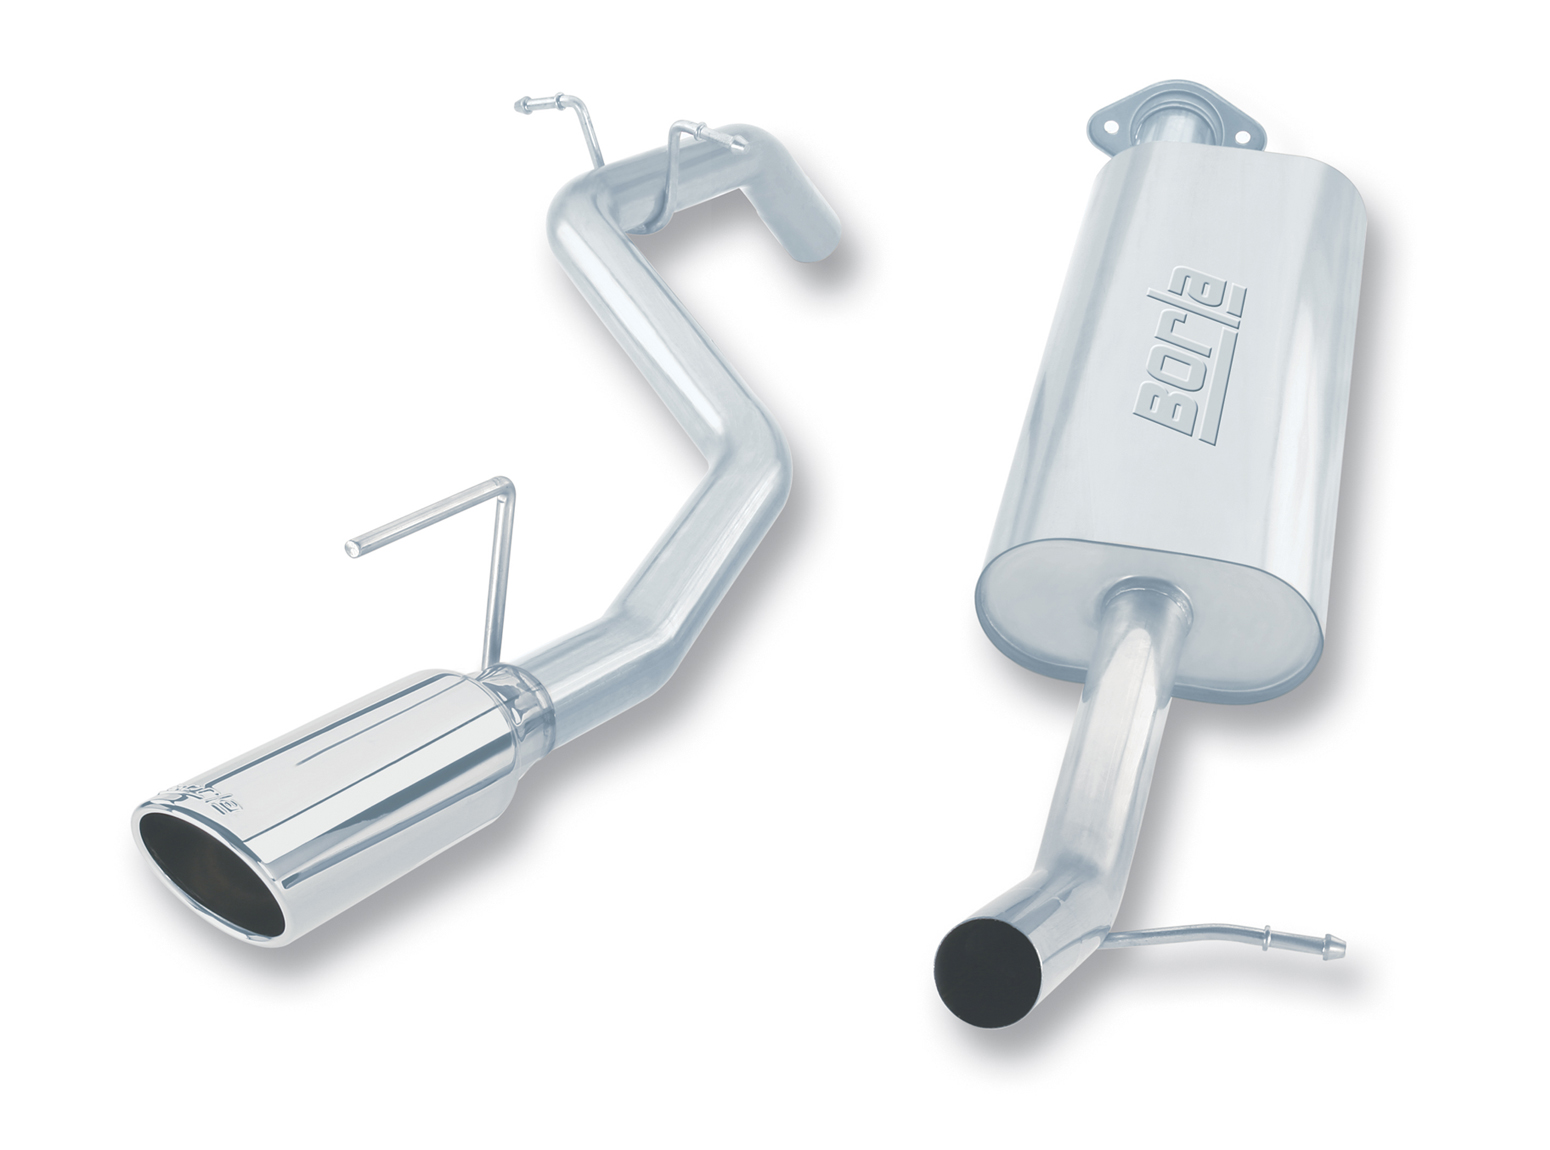 "Jeep Commander 4.7l/5.7l V8 2006-2010 Borla 3"", 2.5"" Cat-Back Exhaust System - Single Round Rolled Angle-Cut  Long X Single Round Rolled Angle-Cut Intercooled Tips"" Dia"